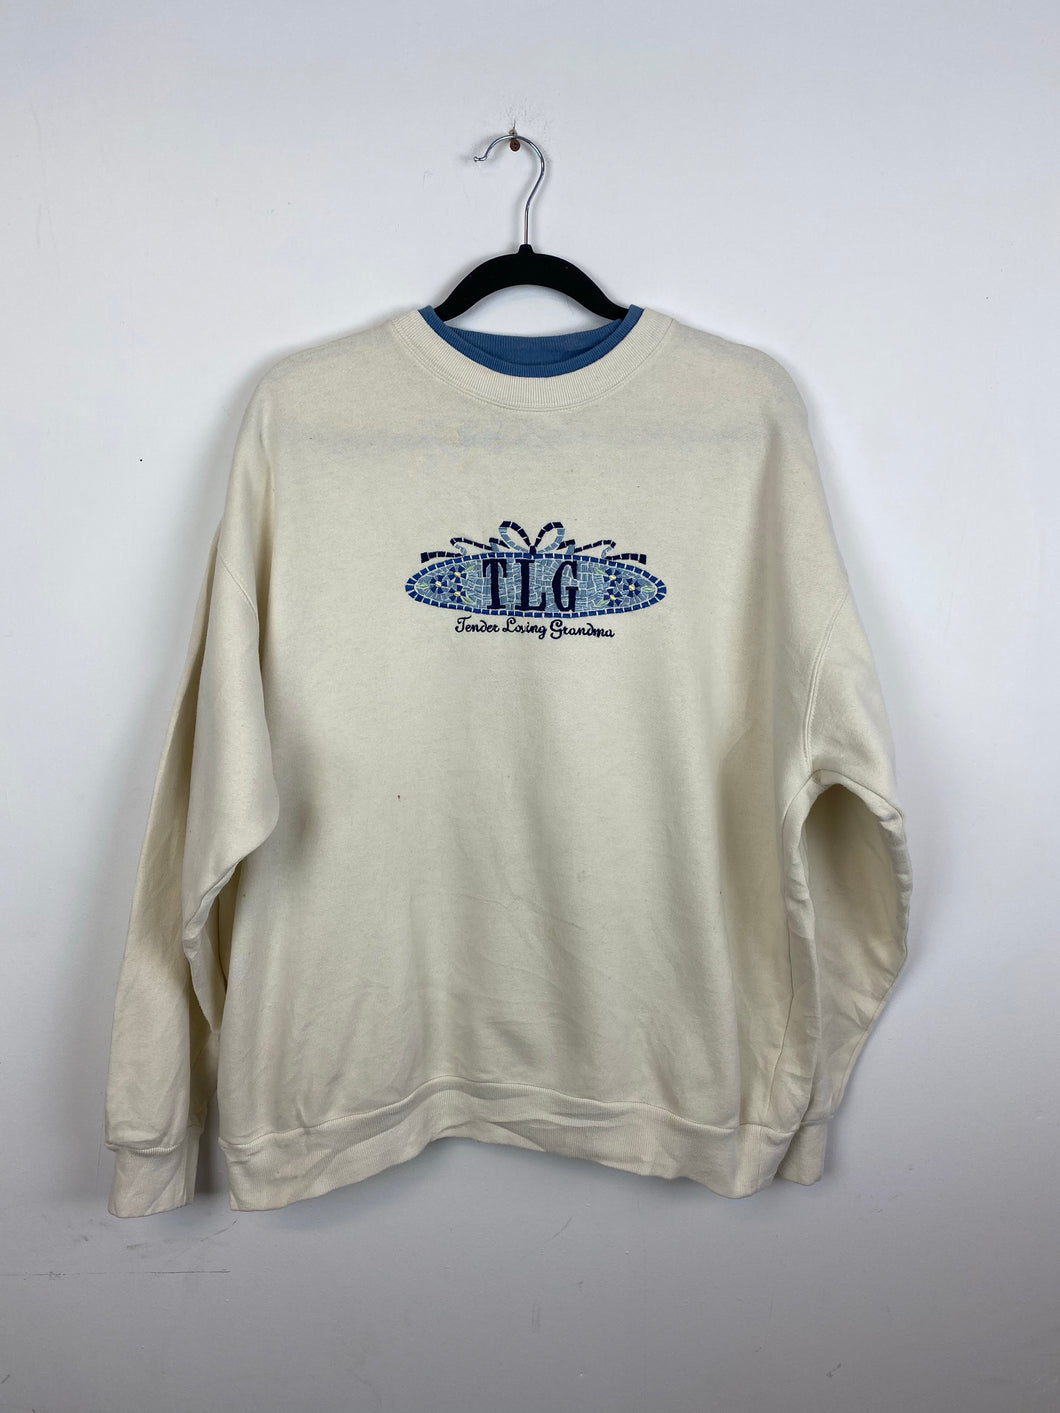 90s embroidered Tender loving grandma crewneck